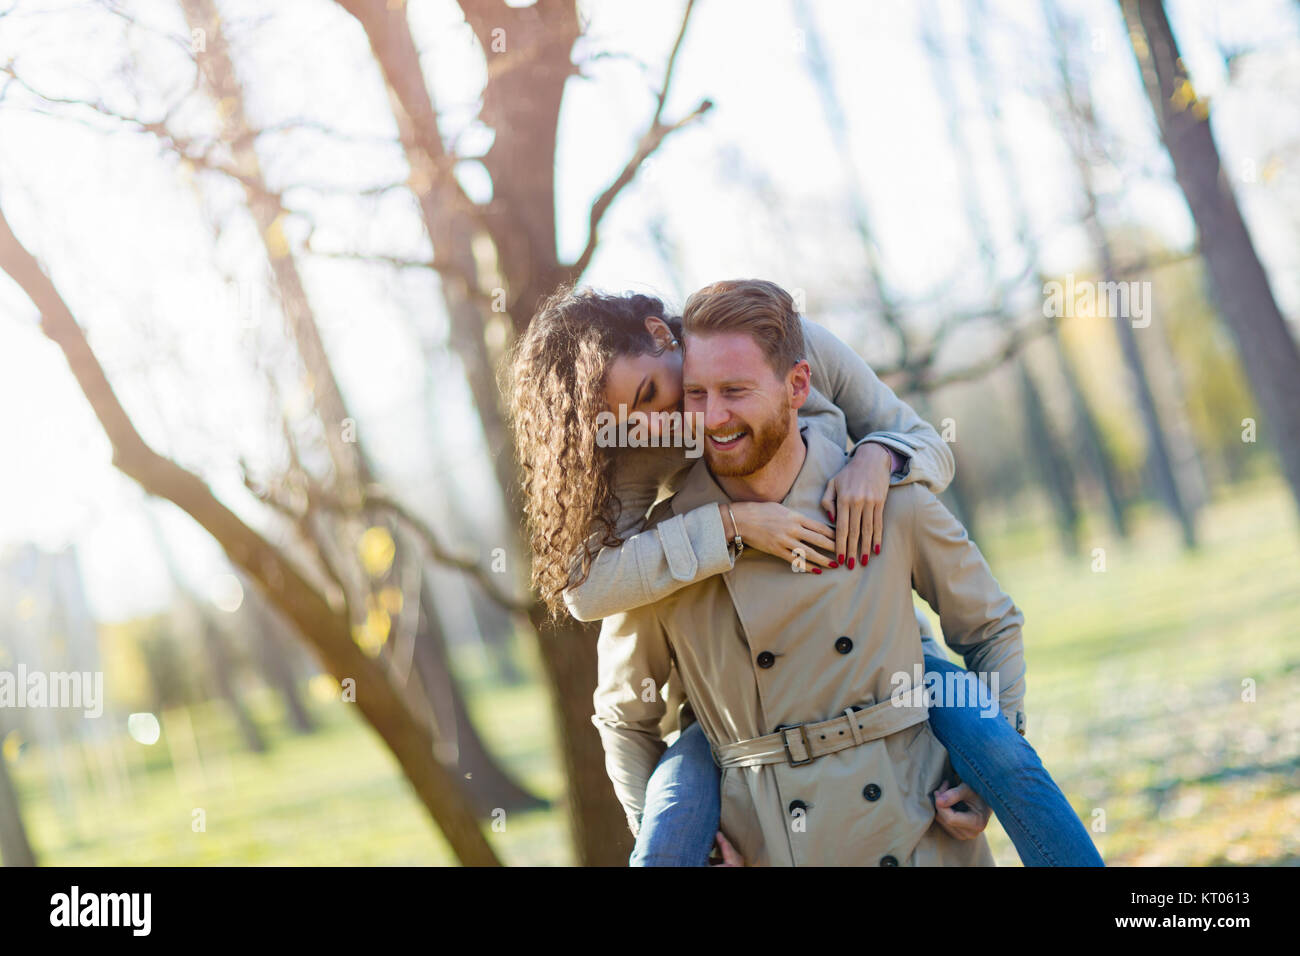 Young couple having romantic date in park - Stock Image